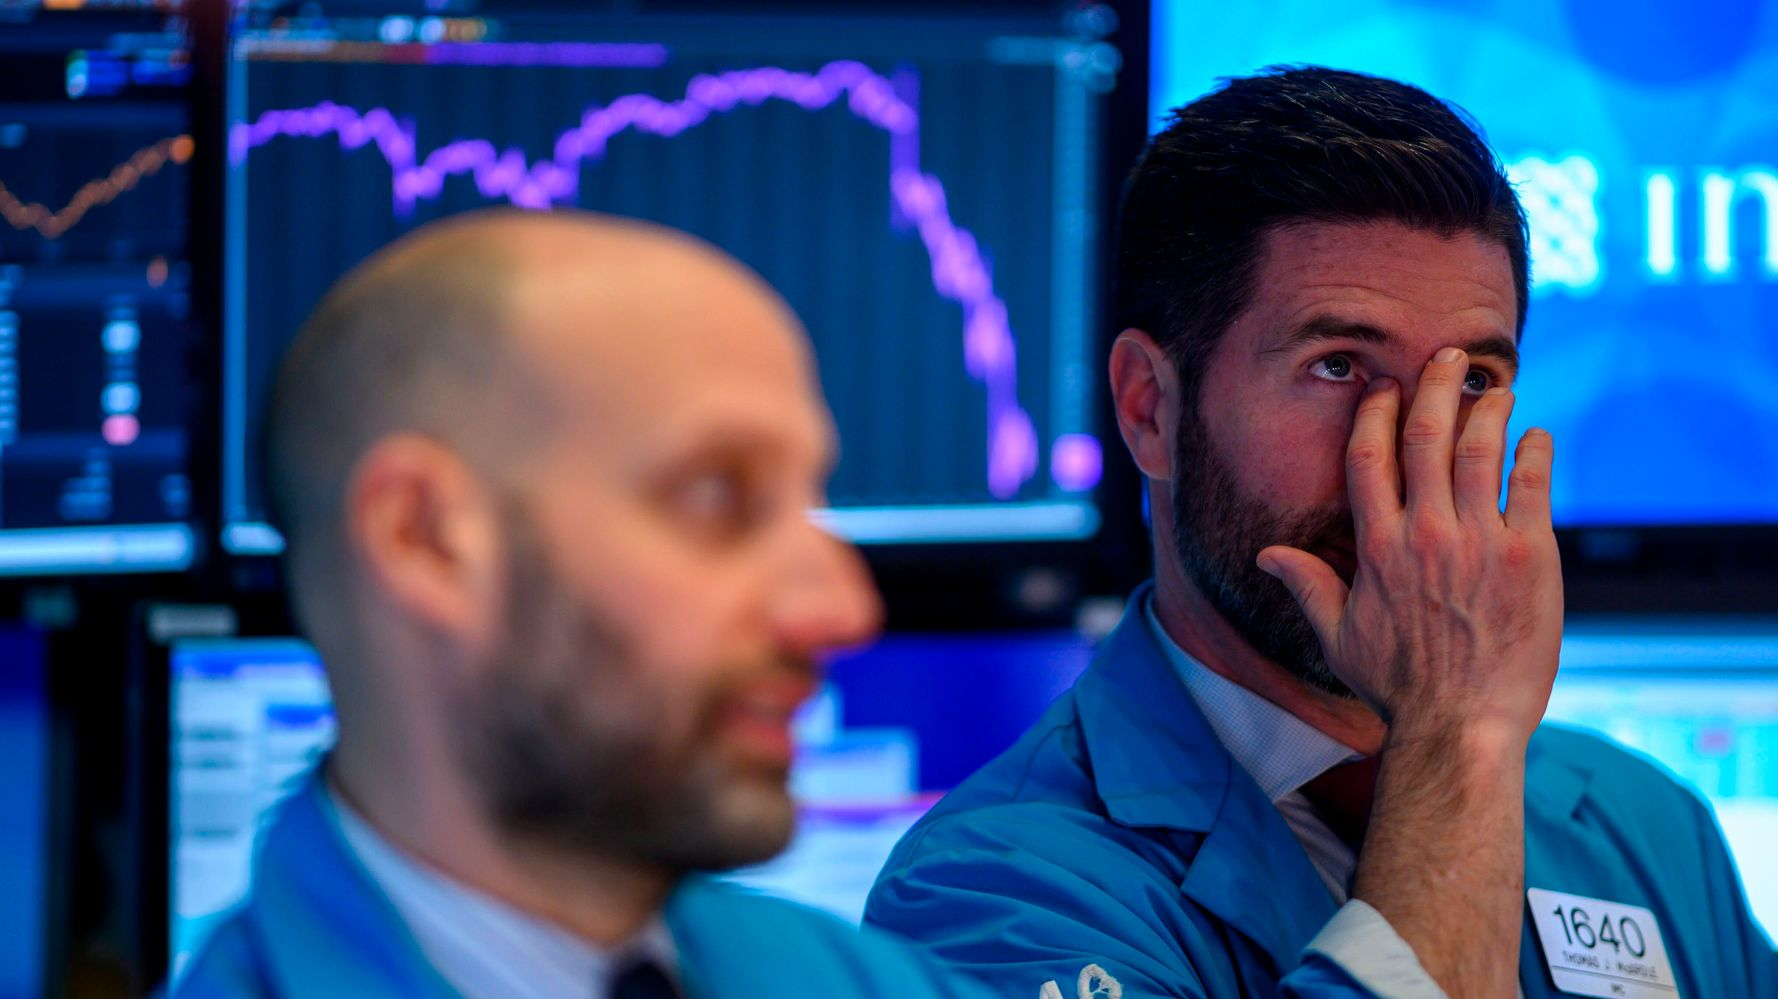 Stocks Market Plunge Delivers Worst Week For Wall Street Since 2008